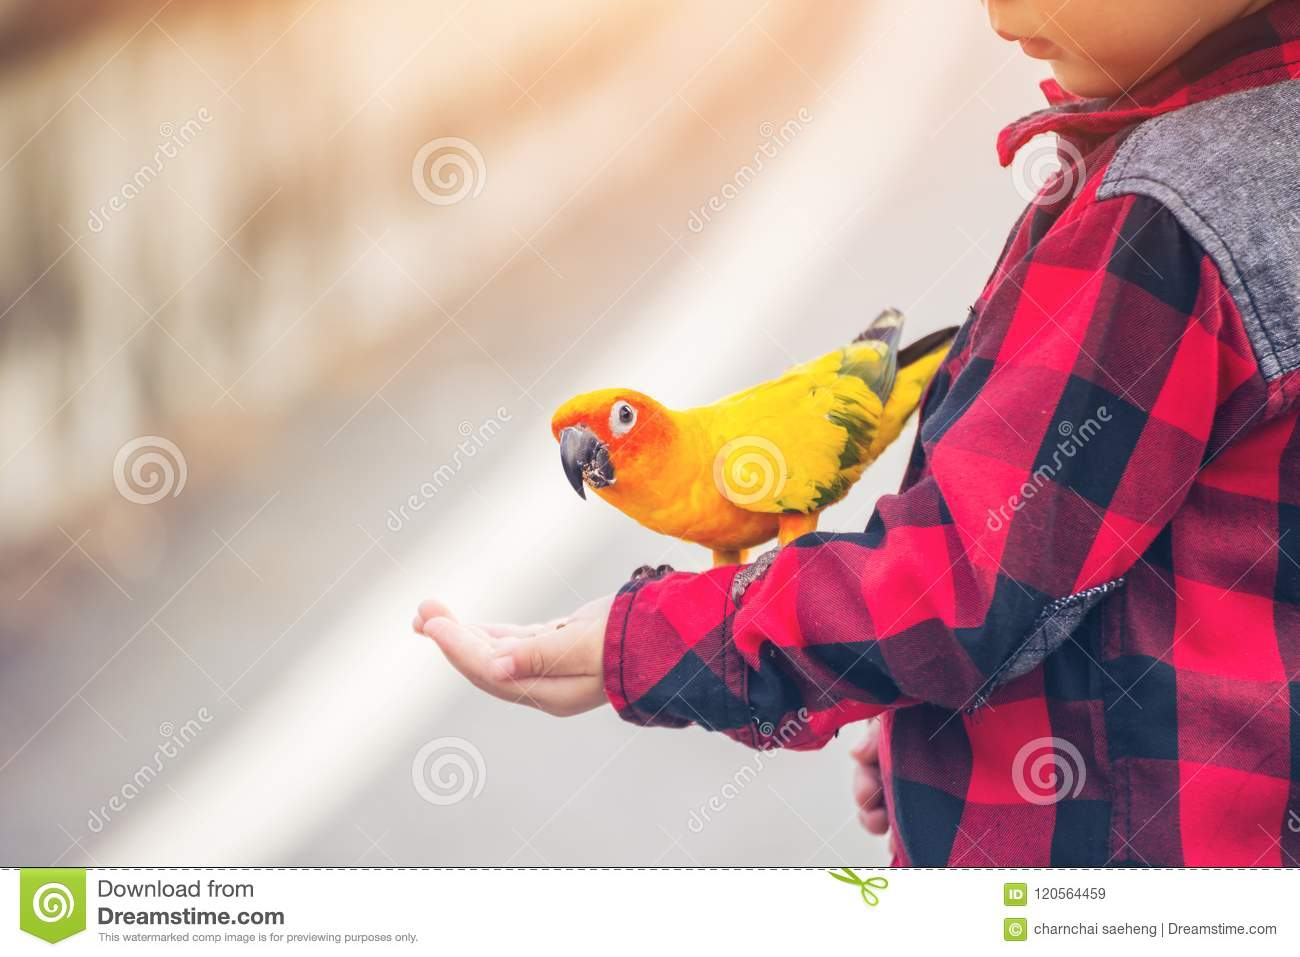 Children give a food for a bird in the park.